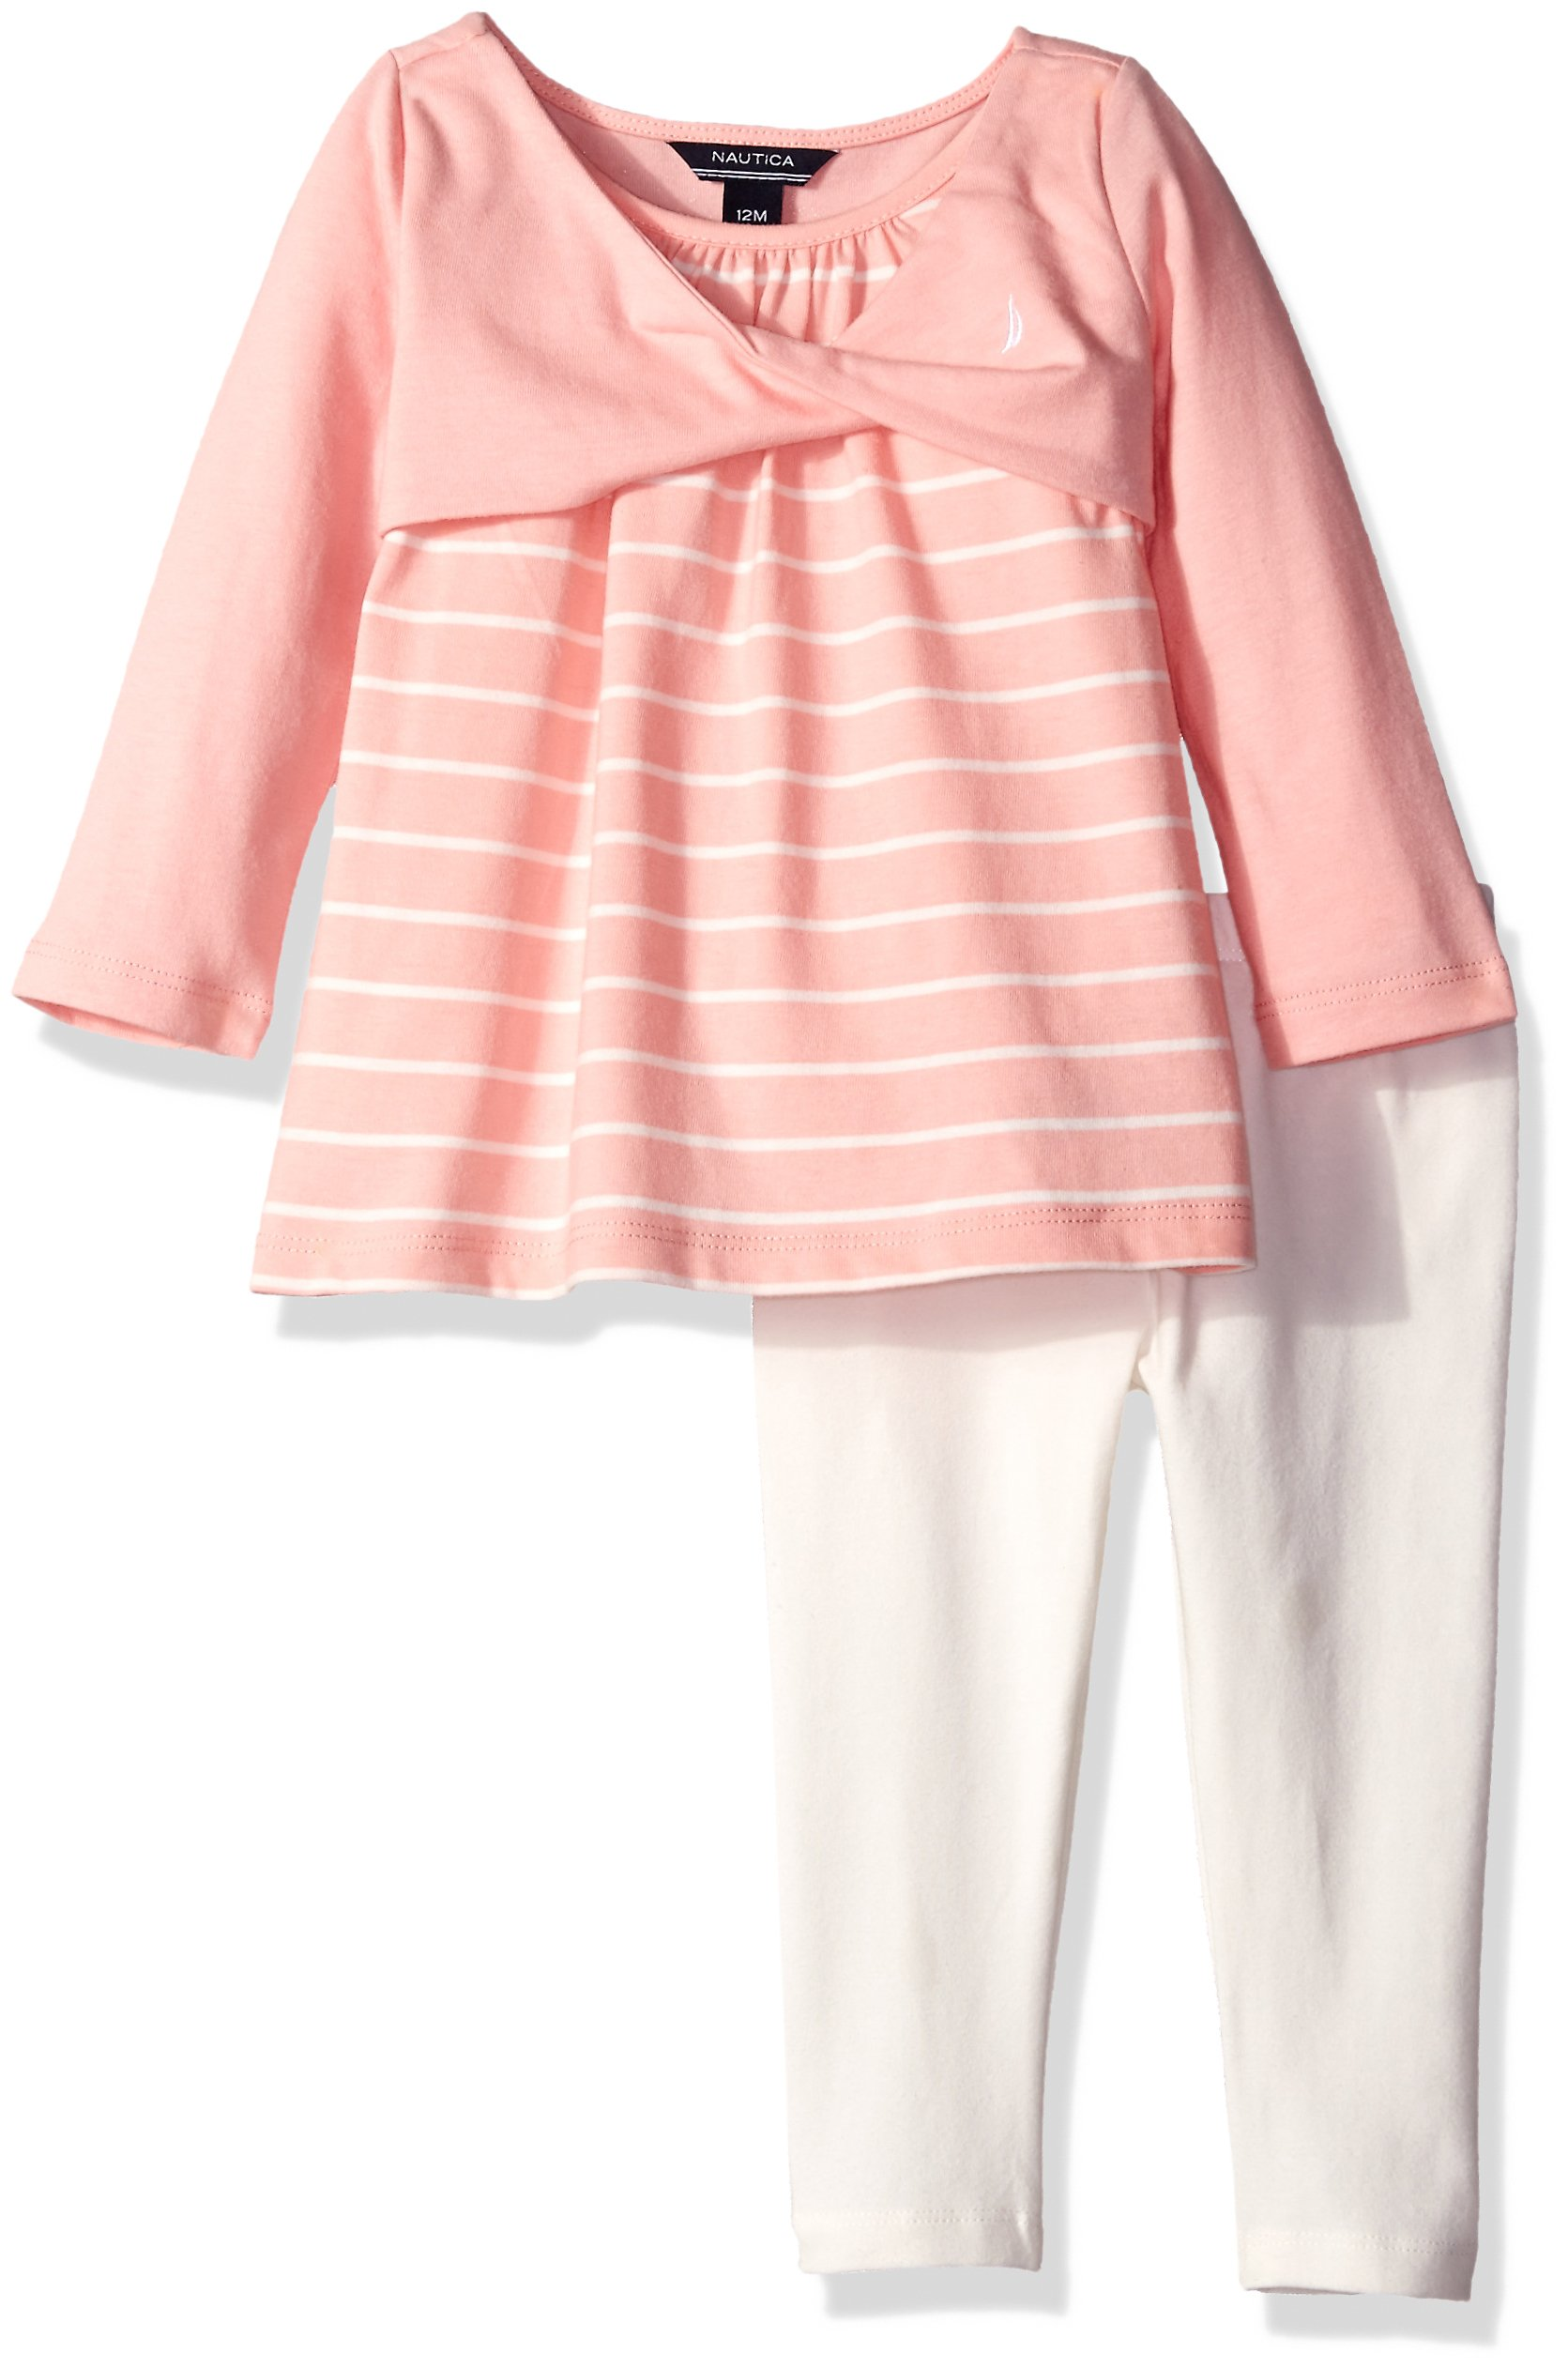 Nautica Baby Knit Top and Legging, Pink, 18 Months